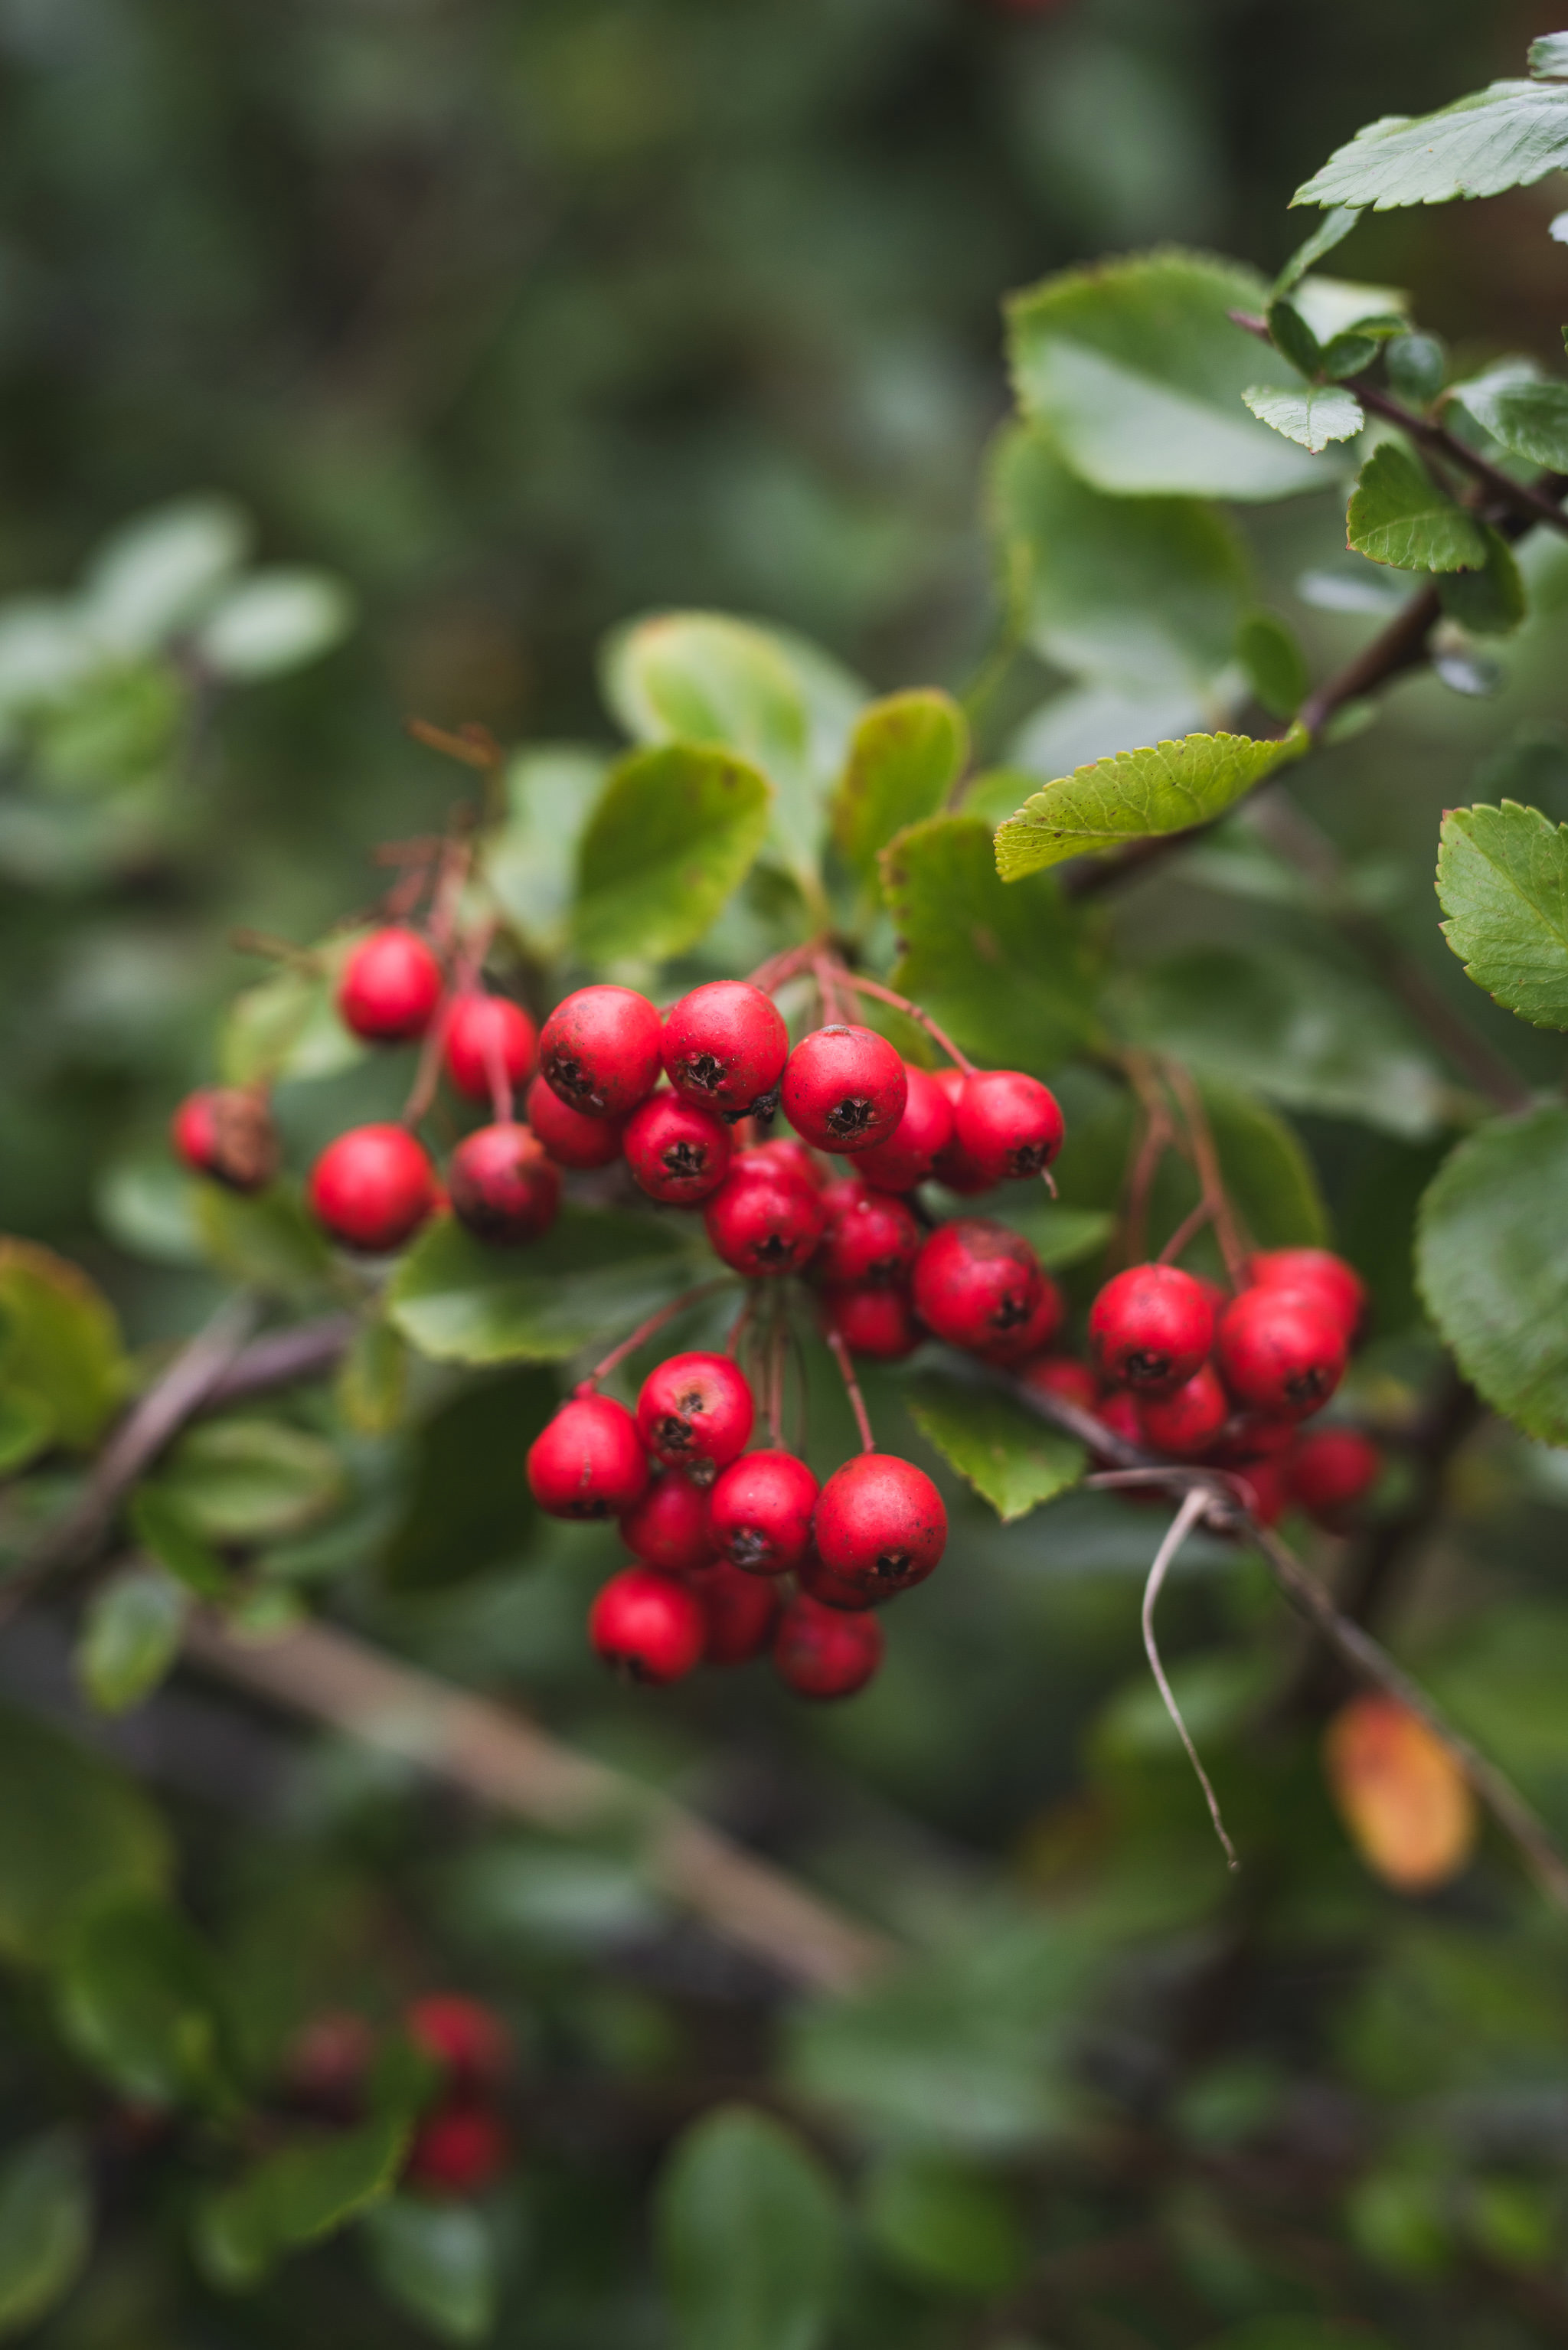 berries on a tree branch